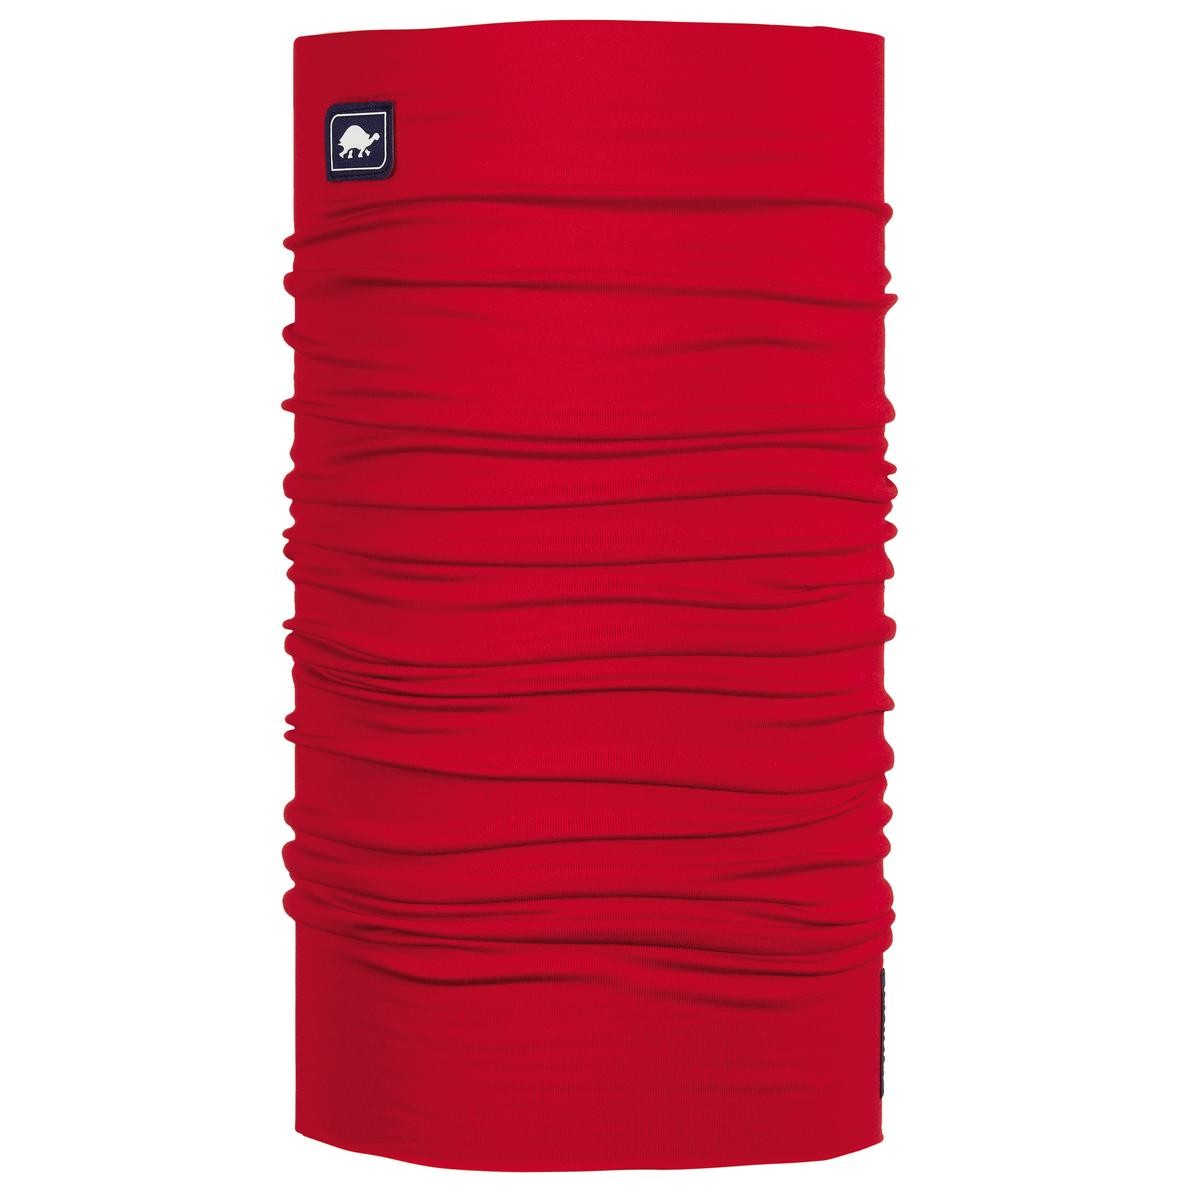 Turtle Fur Totally Tubular Comfort Shell Tube Neck Gaiter Red - One Size